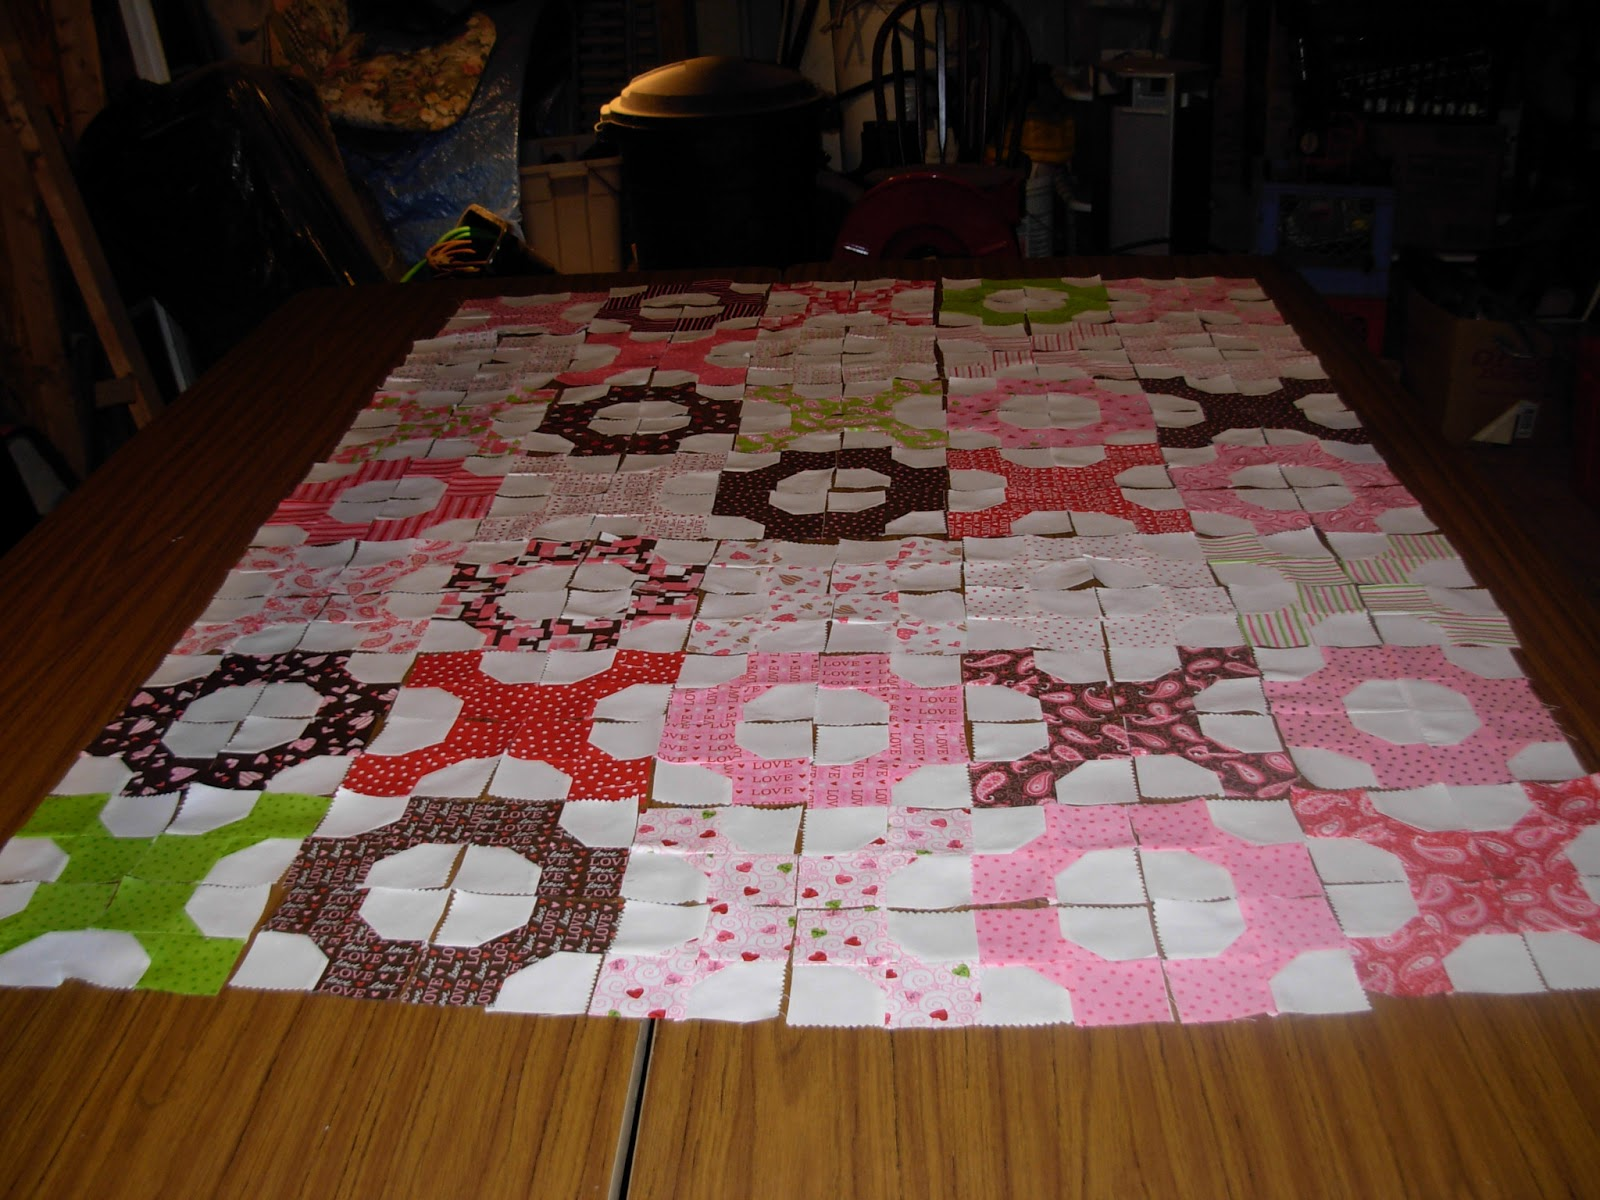 Man Cave Quilt Kit : What about rheema invading the man cave